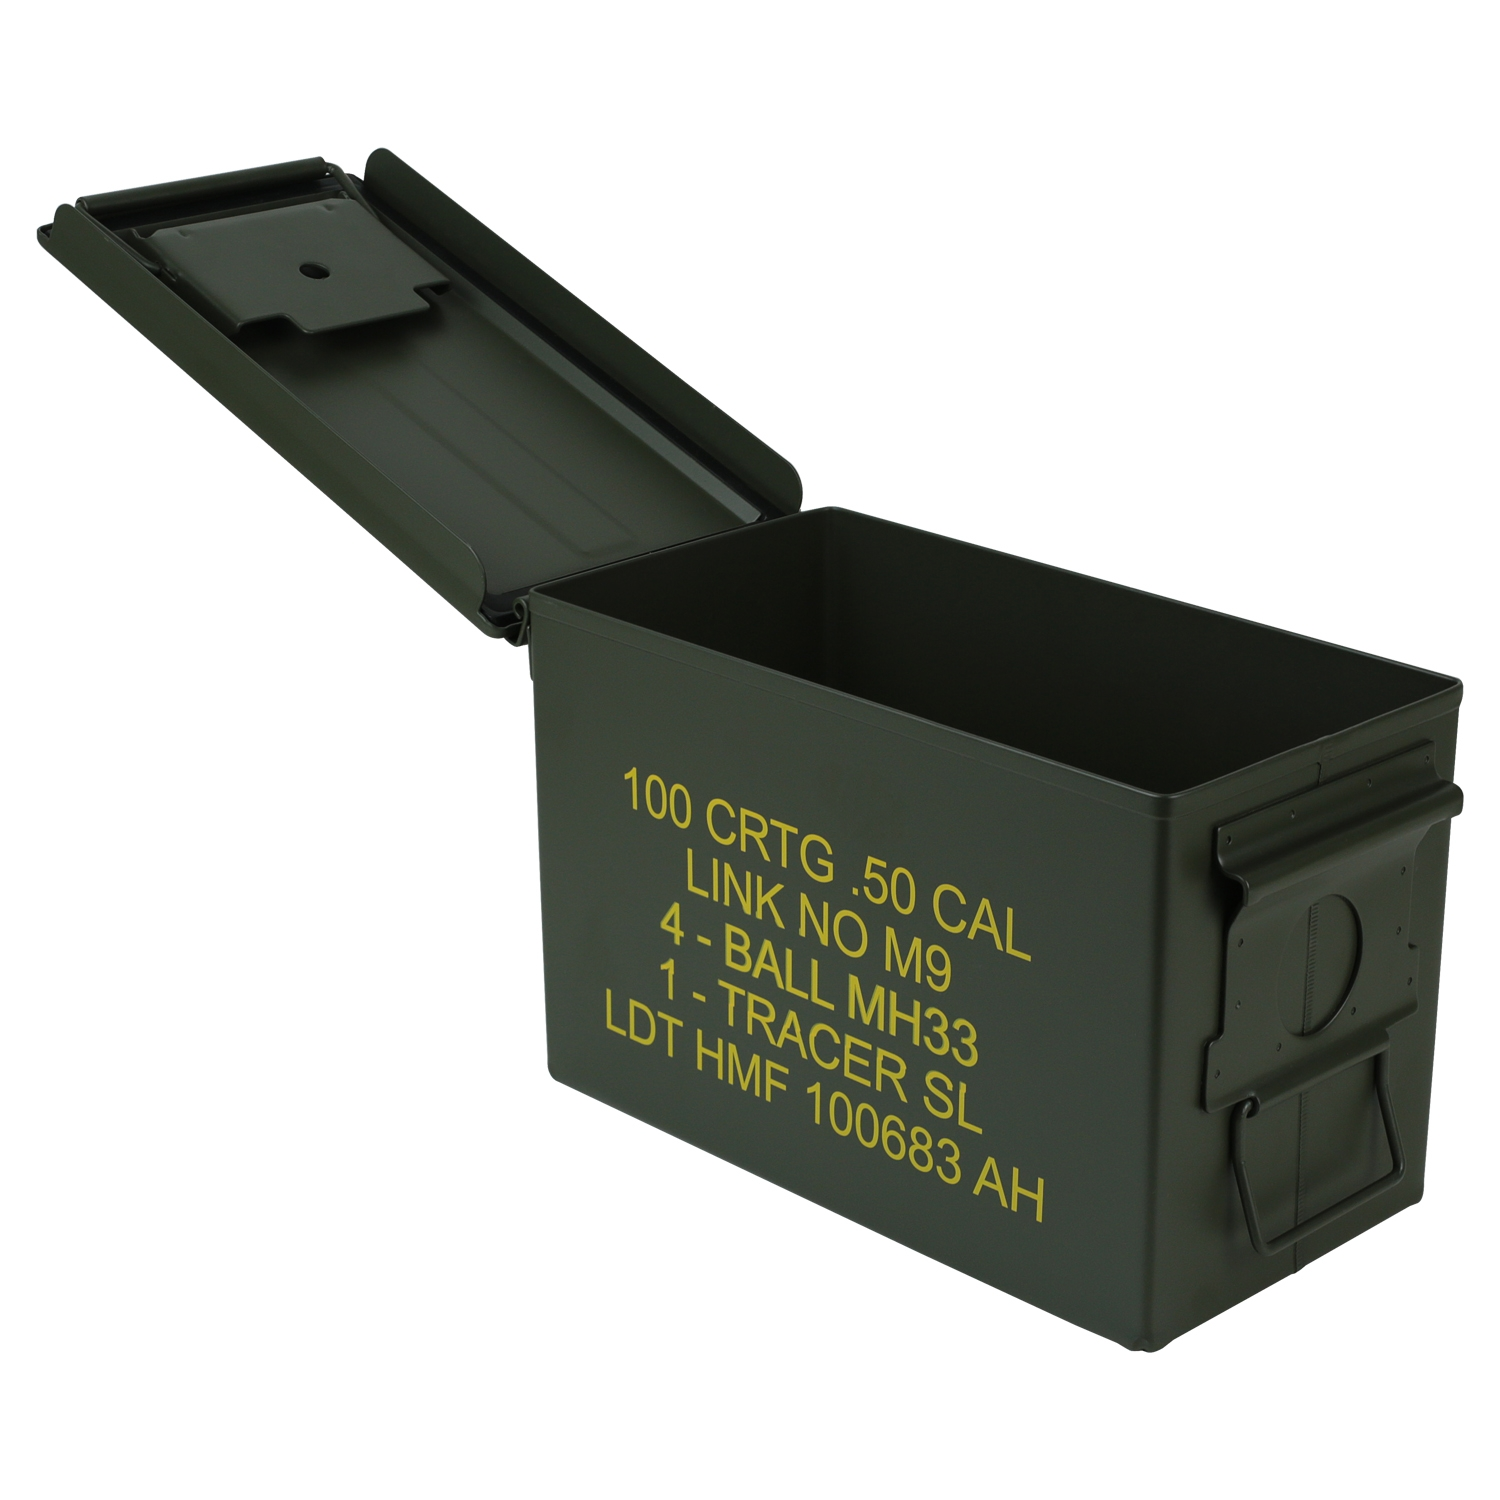 HMF-Munitionskiste-US-Ammo-Box-Metallkiste-Metallbox-Transportbox-Werkzeugkoffer Indexbild 10